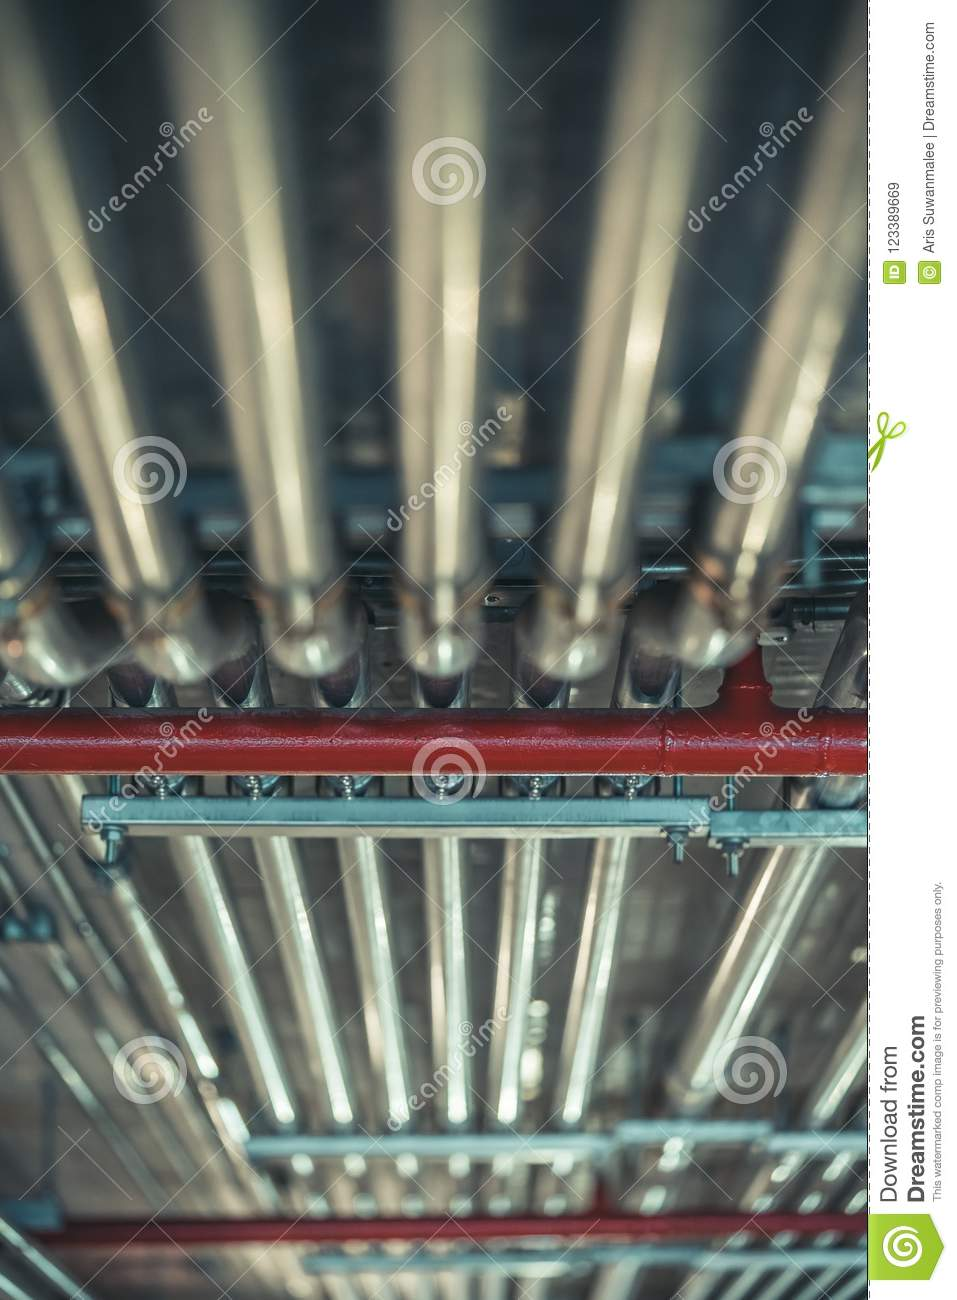 Ceiling Fire Hydrant Steel Pipe Clamp Stock Image - Image of